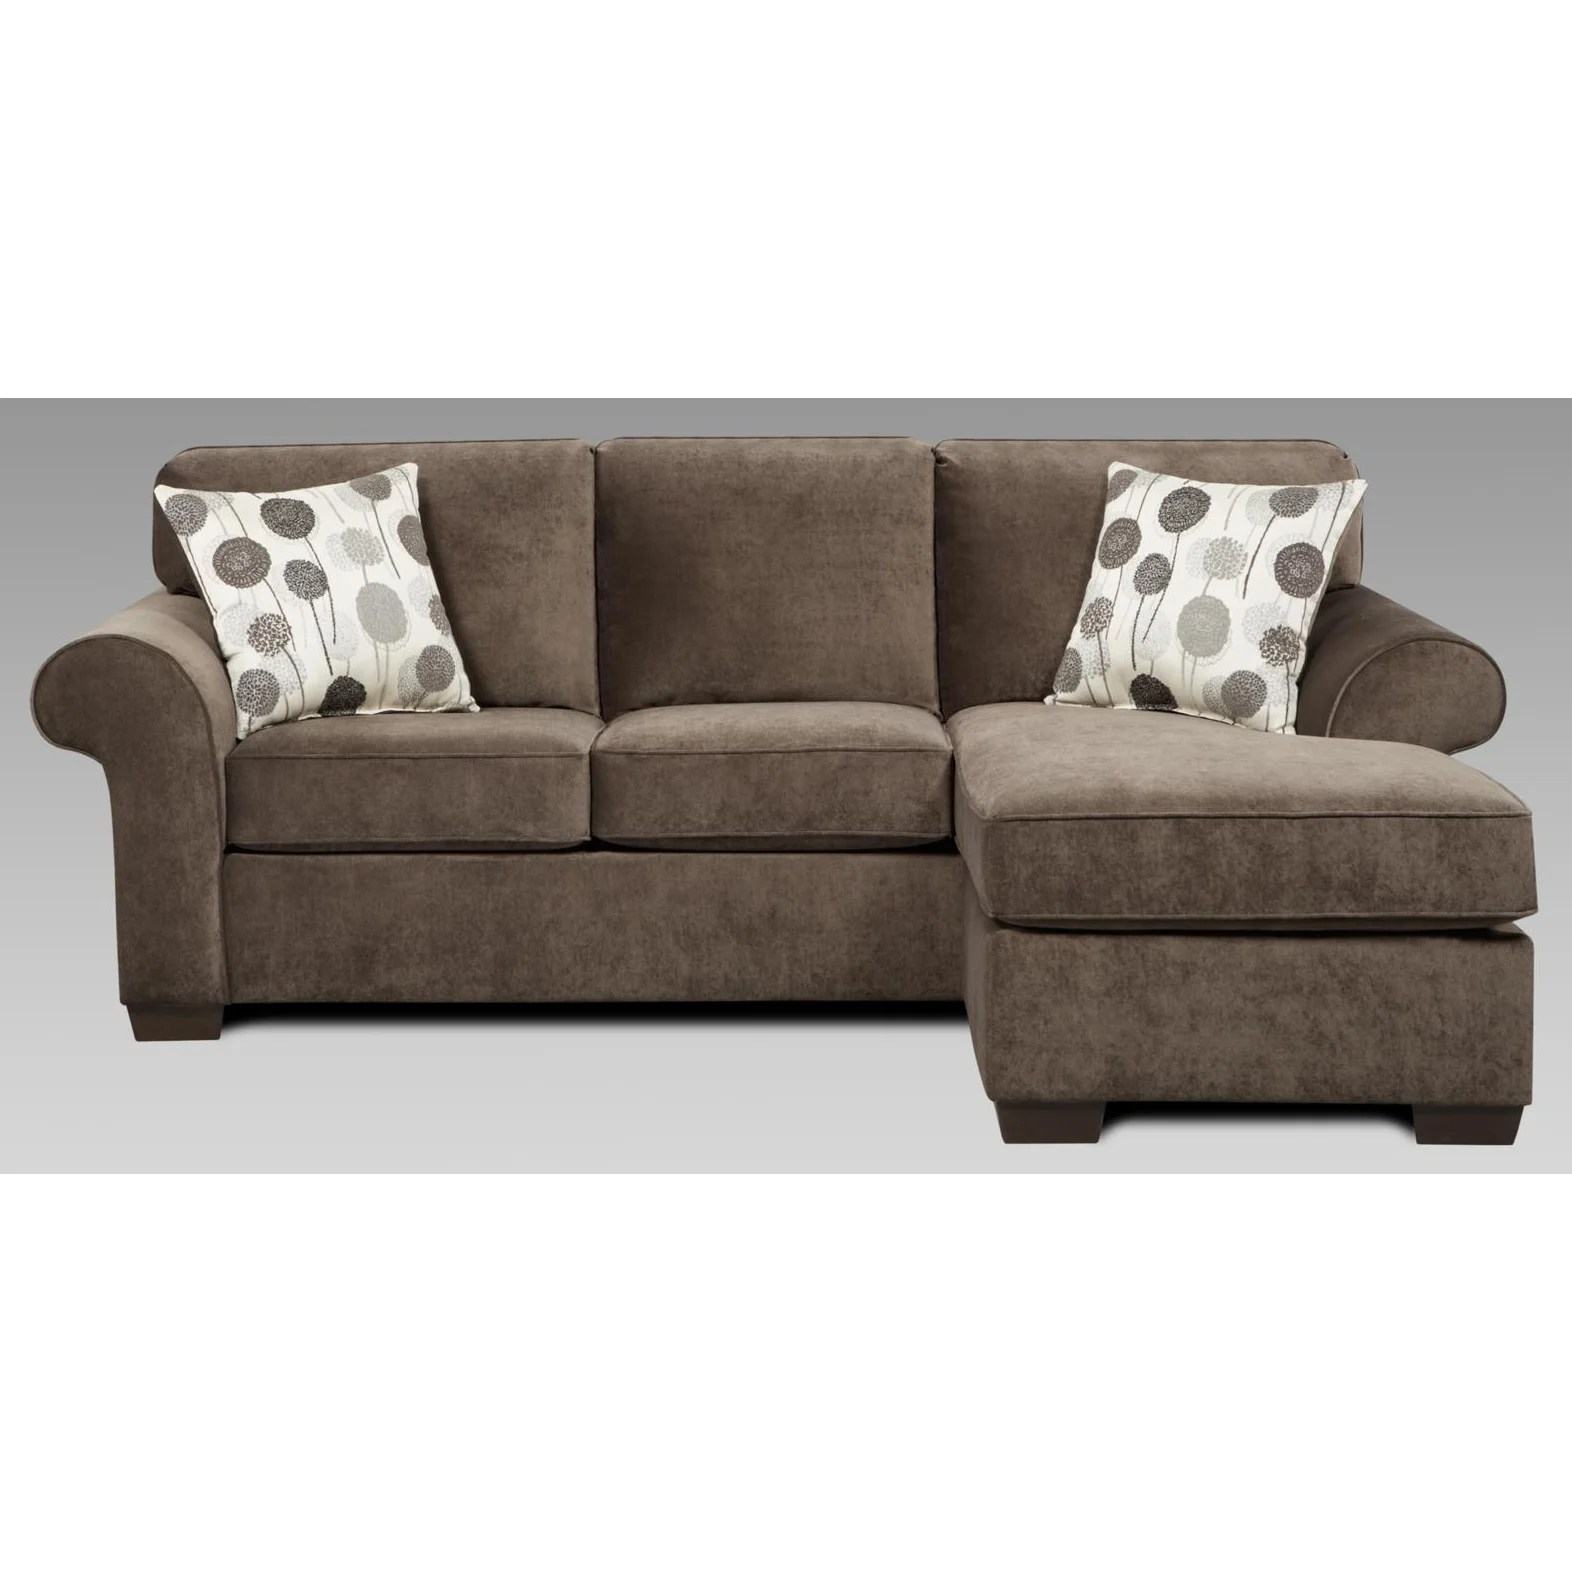 elena reversible chaise sofa bed olx bangalore three posts columbus sectional and reviews